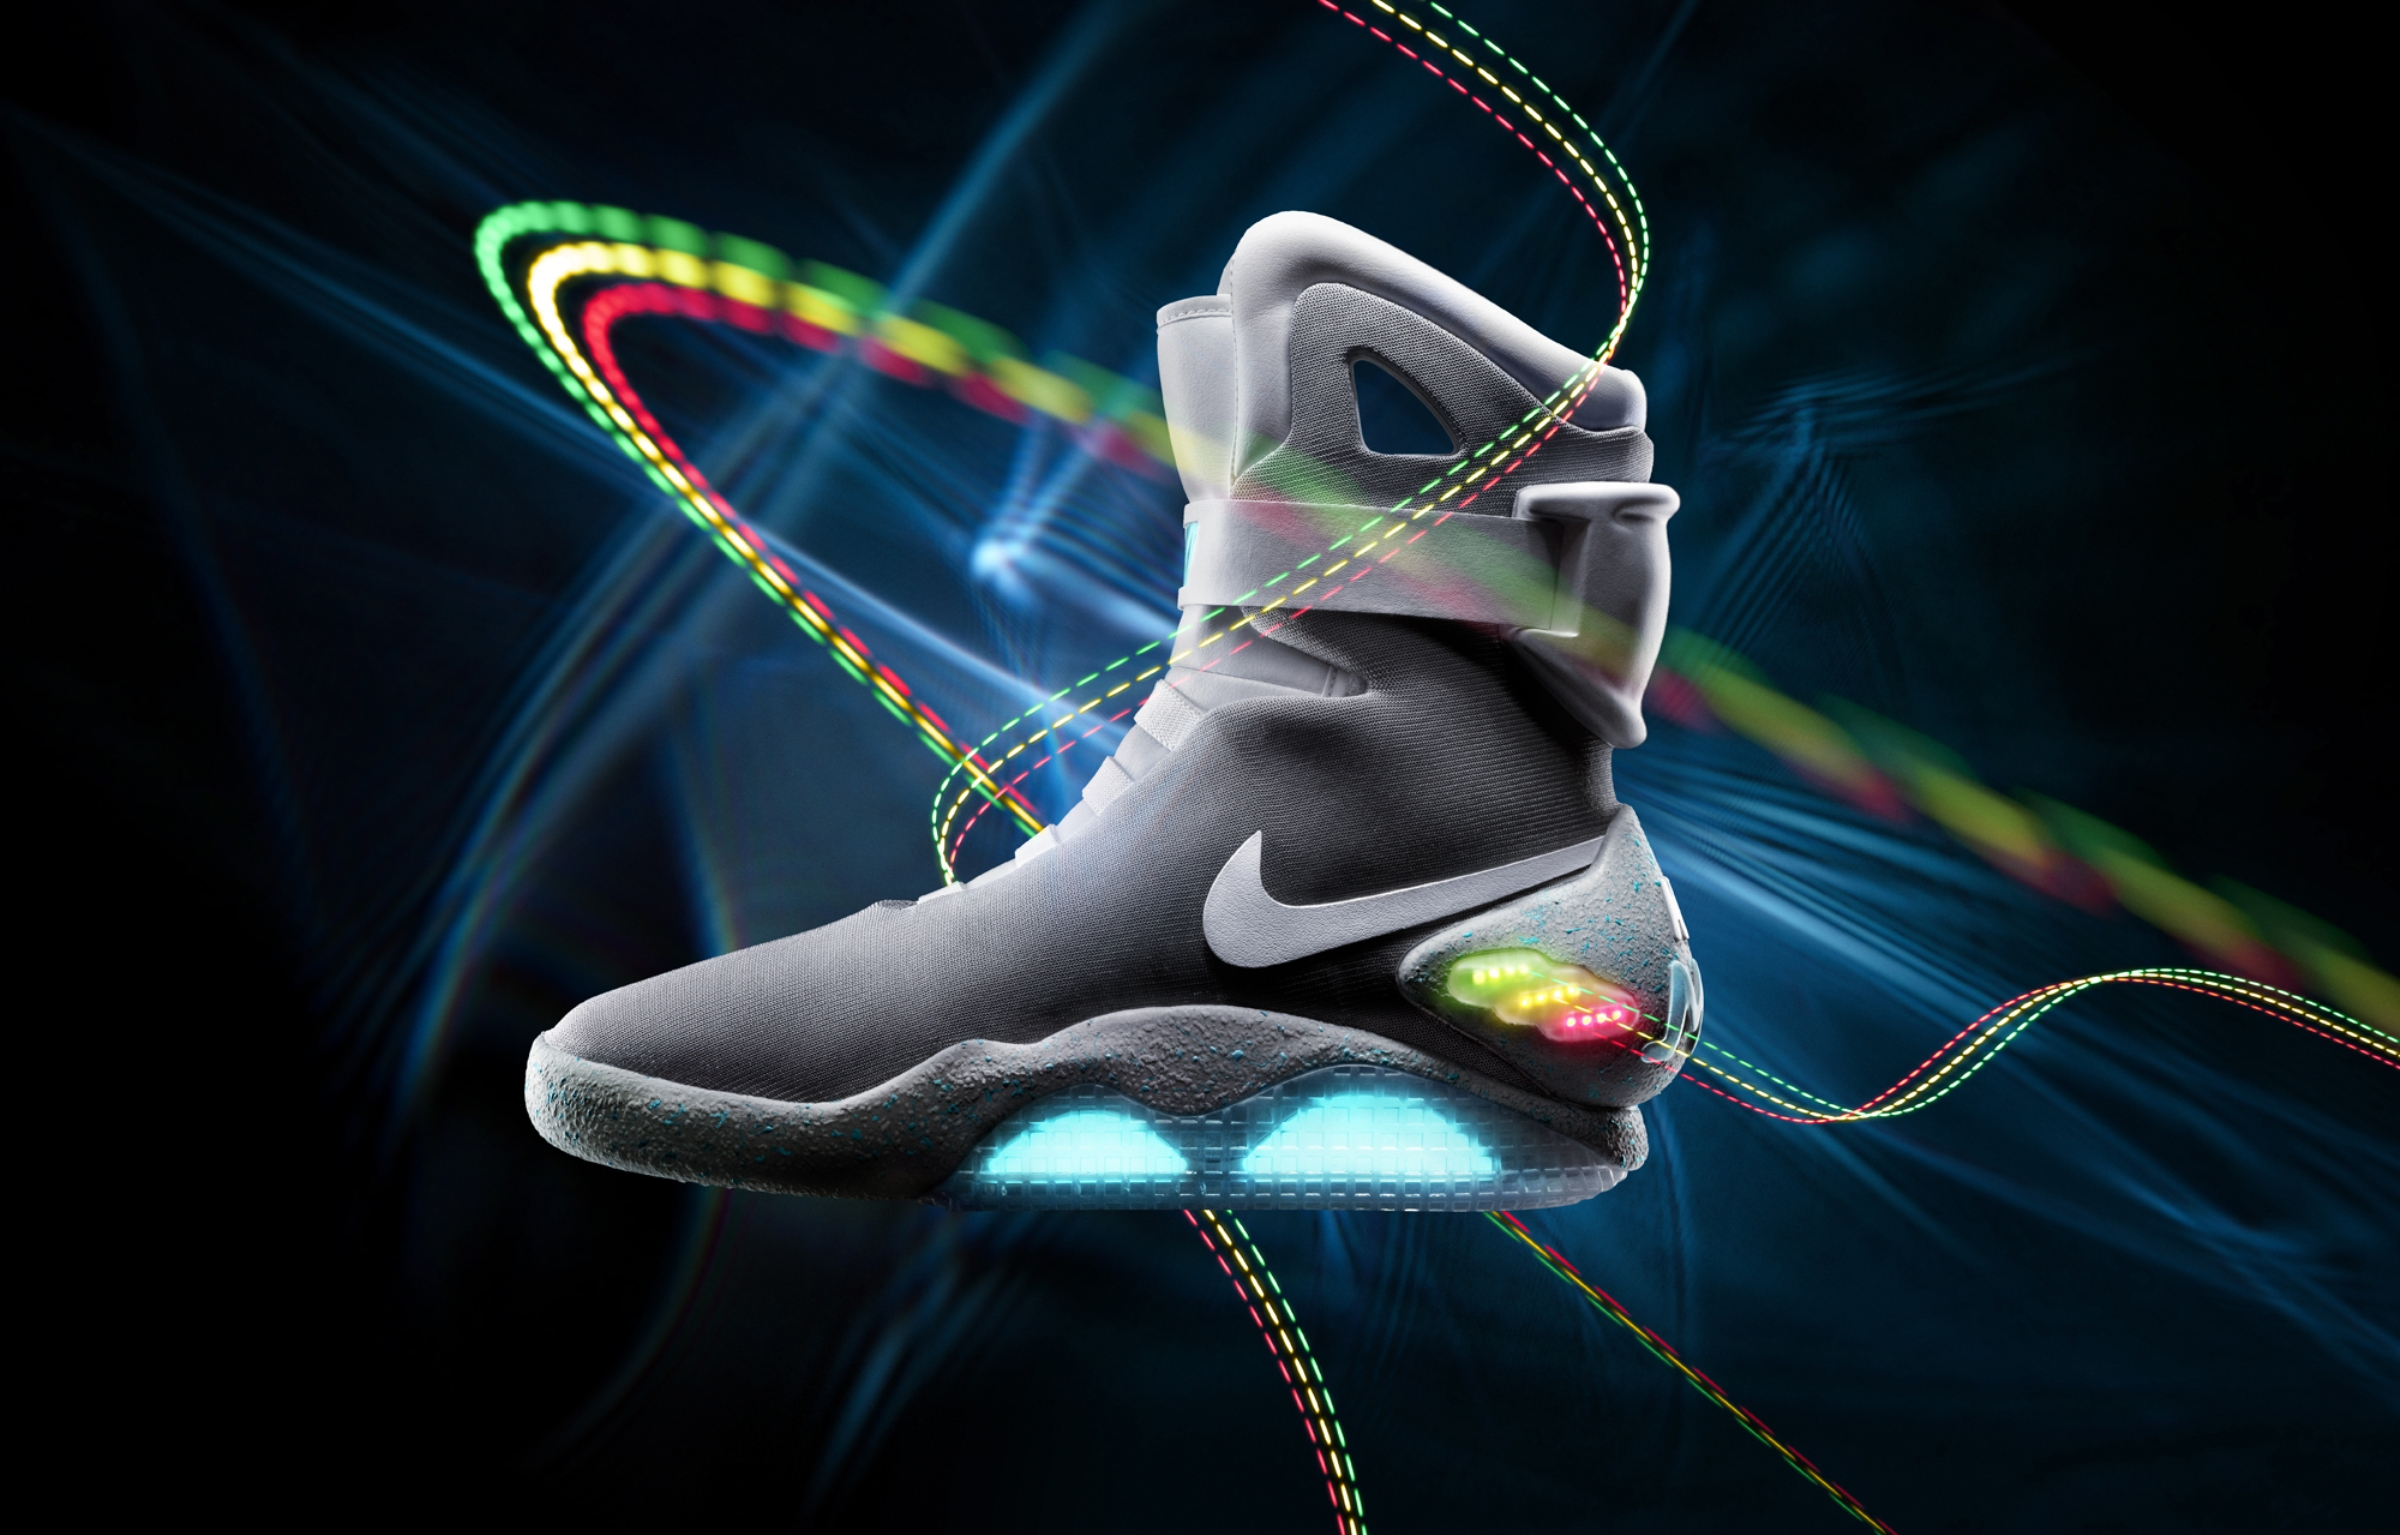 NIKE ANNOUNCE THE RE-RELEASE OF THE BACK 2 THE FUTURE INSPIRED 'AIR MAGS'